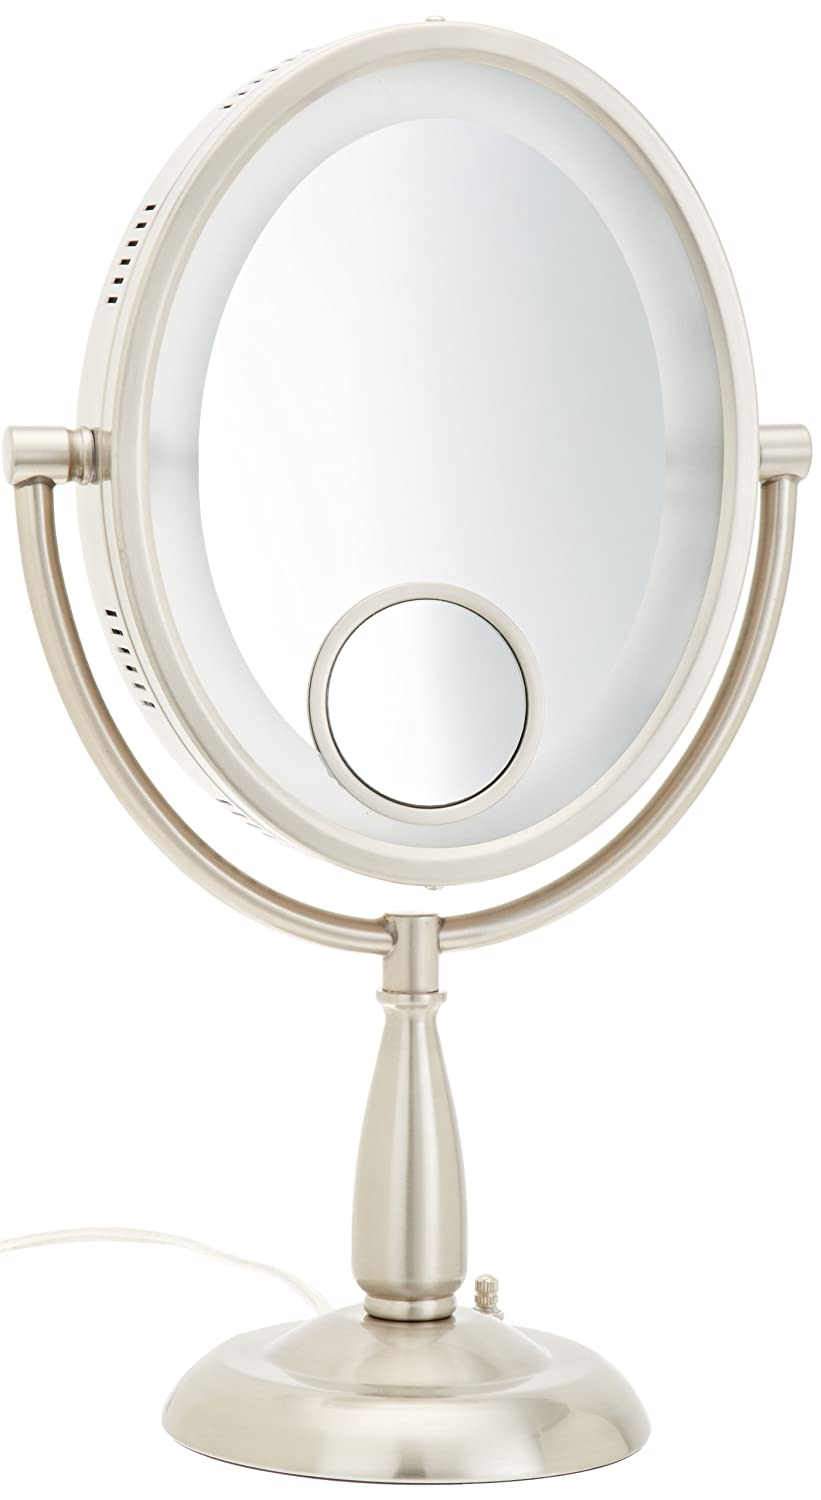 Jerdon HL9510N 8-Inch Two-Sided Oval Halo Lighted Vanity Mirror With 10x  And 15x Magnification And 3-Light Settings, 17.5-Inch Height, Nickel  Finish: